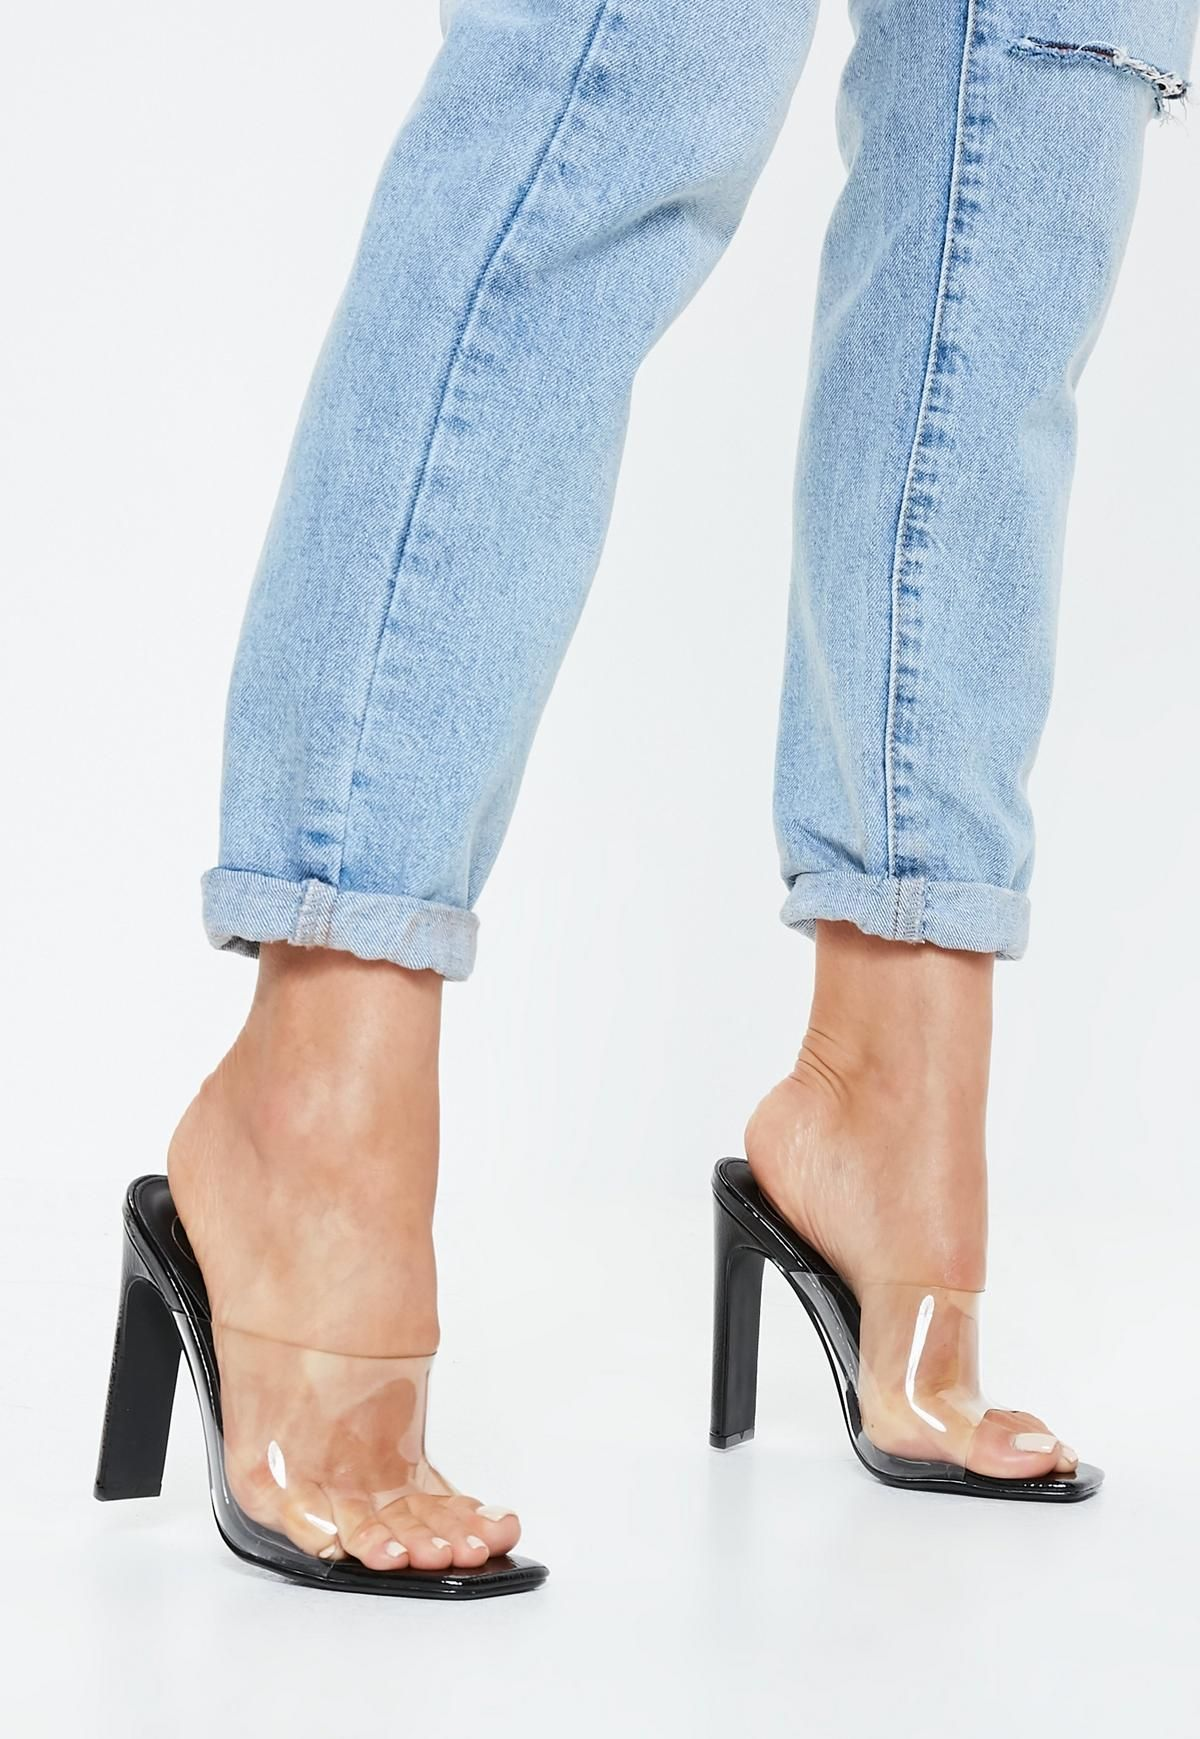 b011ff2beec Black Patent Square Toe Clear Heels in 2019 | Shoes | Clear heels ...